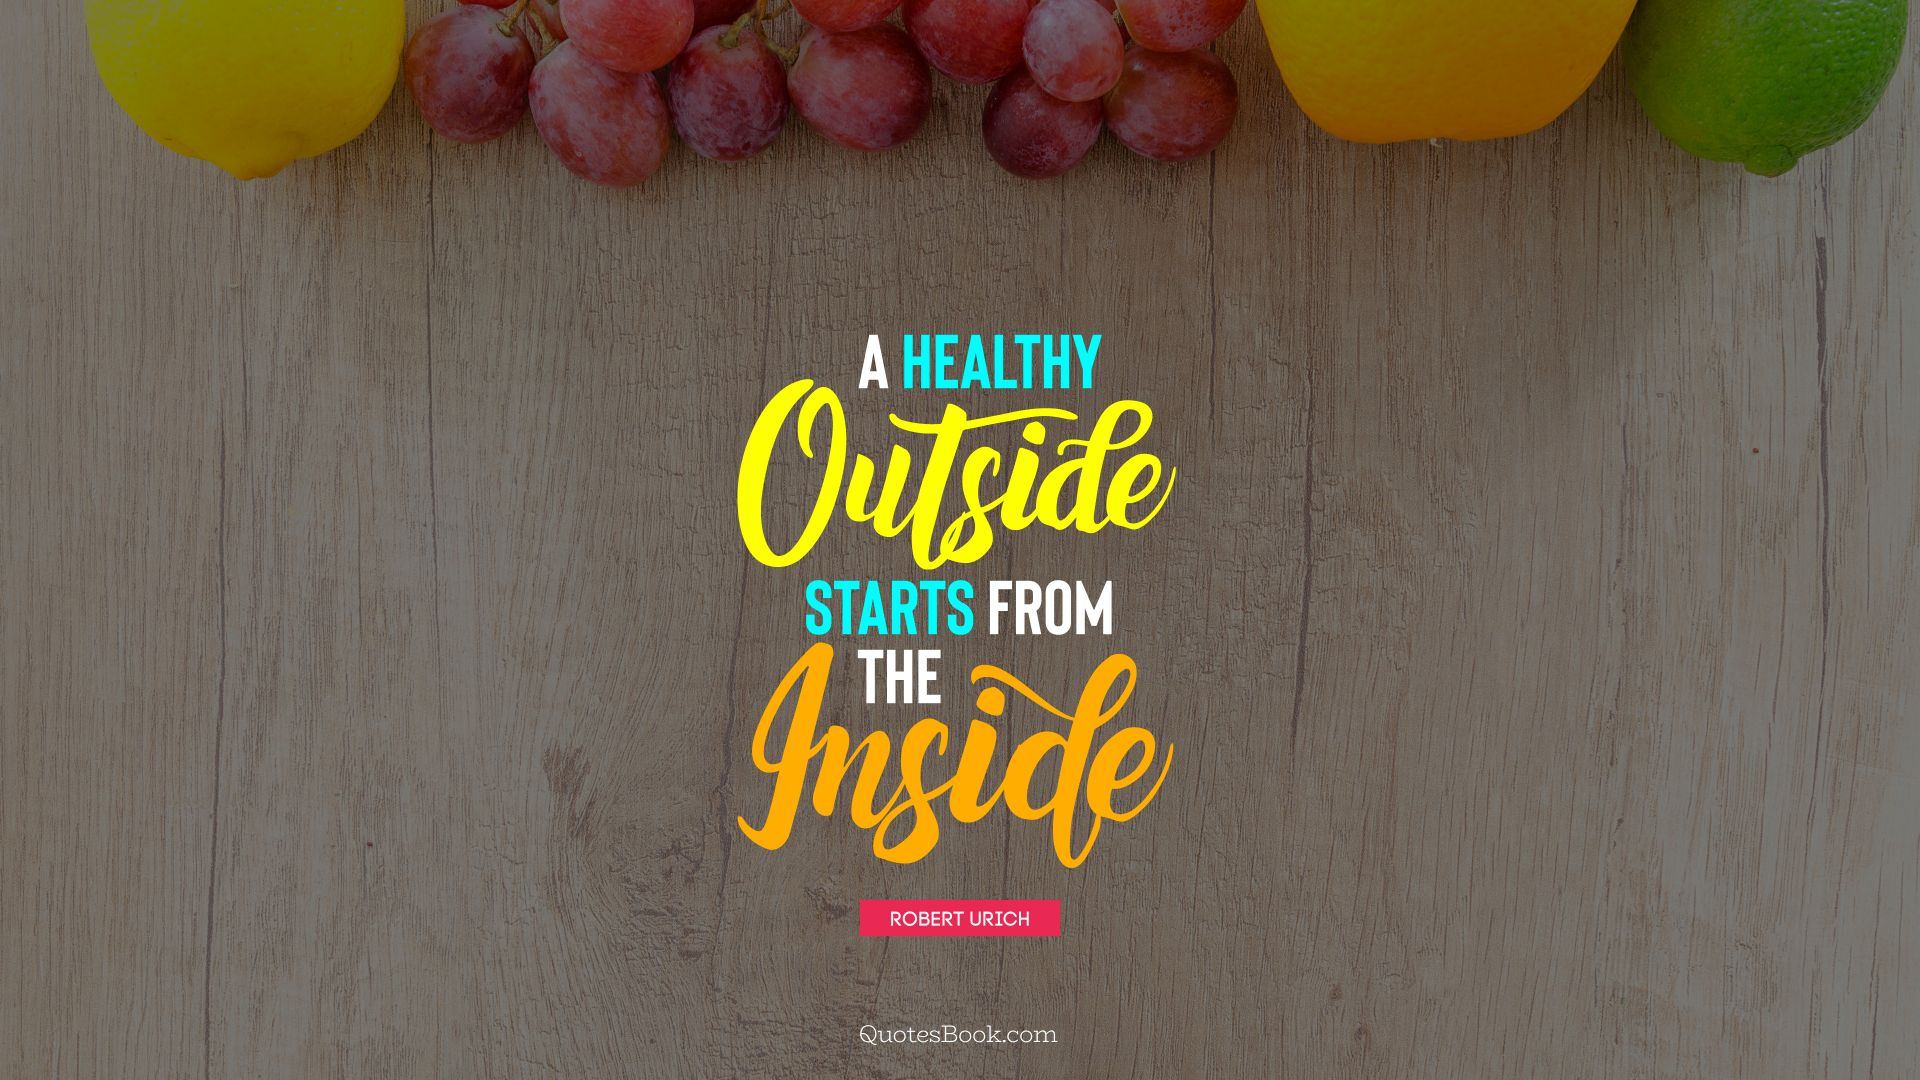 A healthy outside starts from the inside. - Quote by Robert Urich